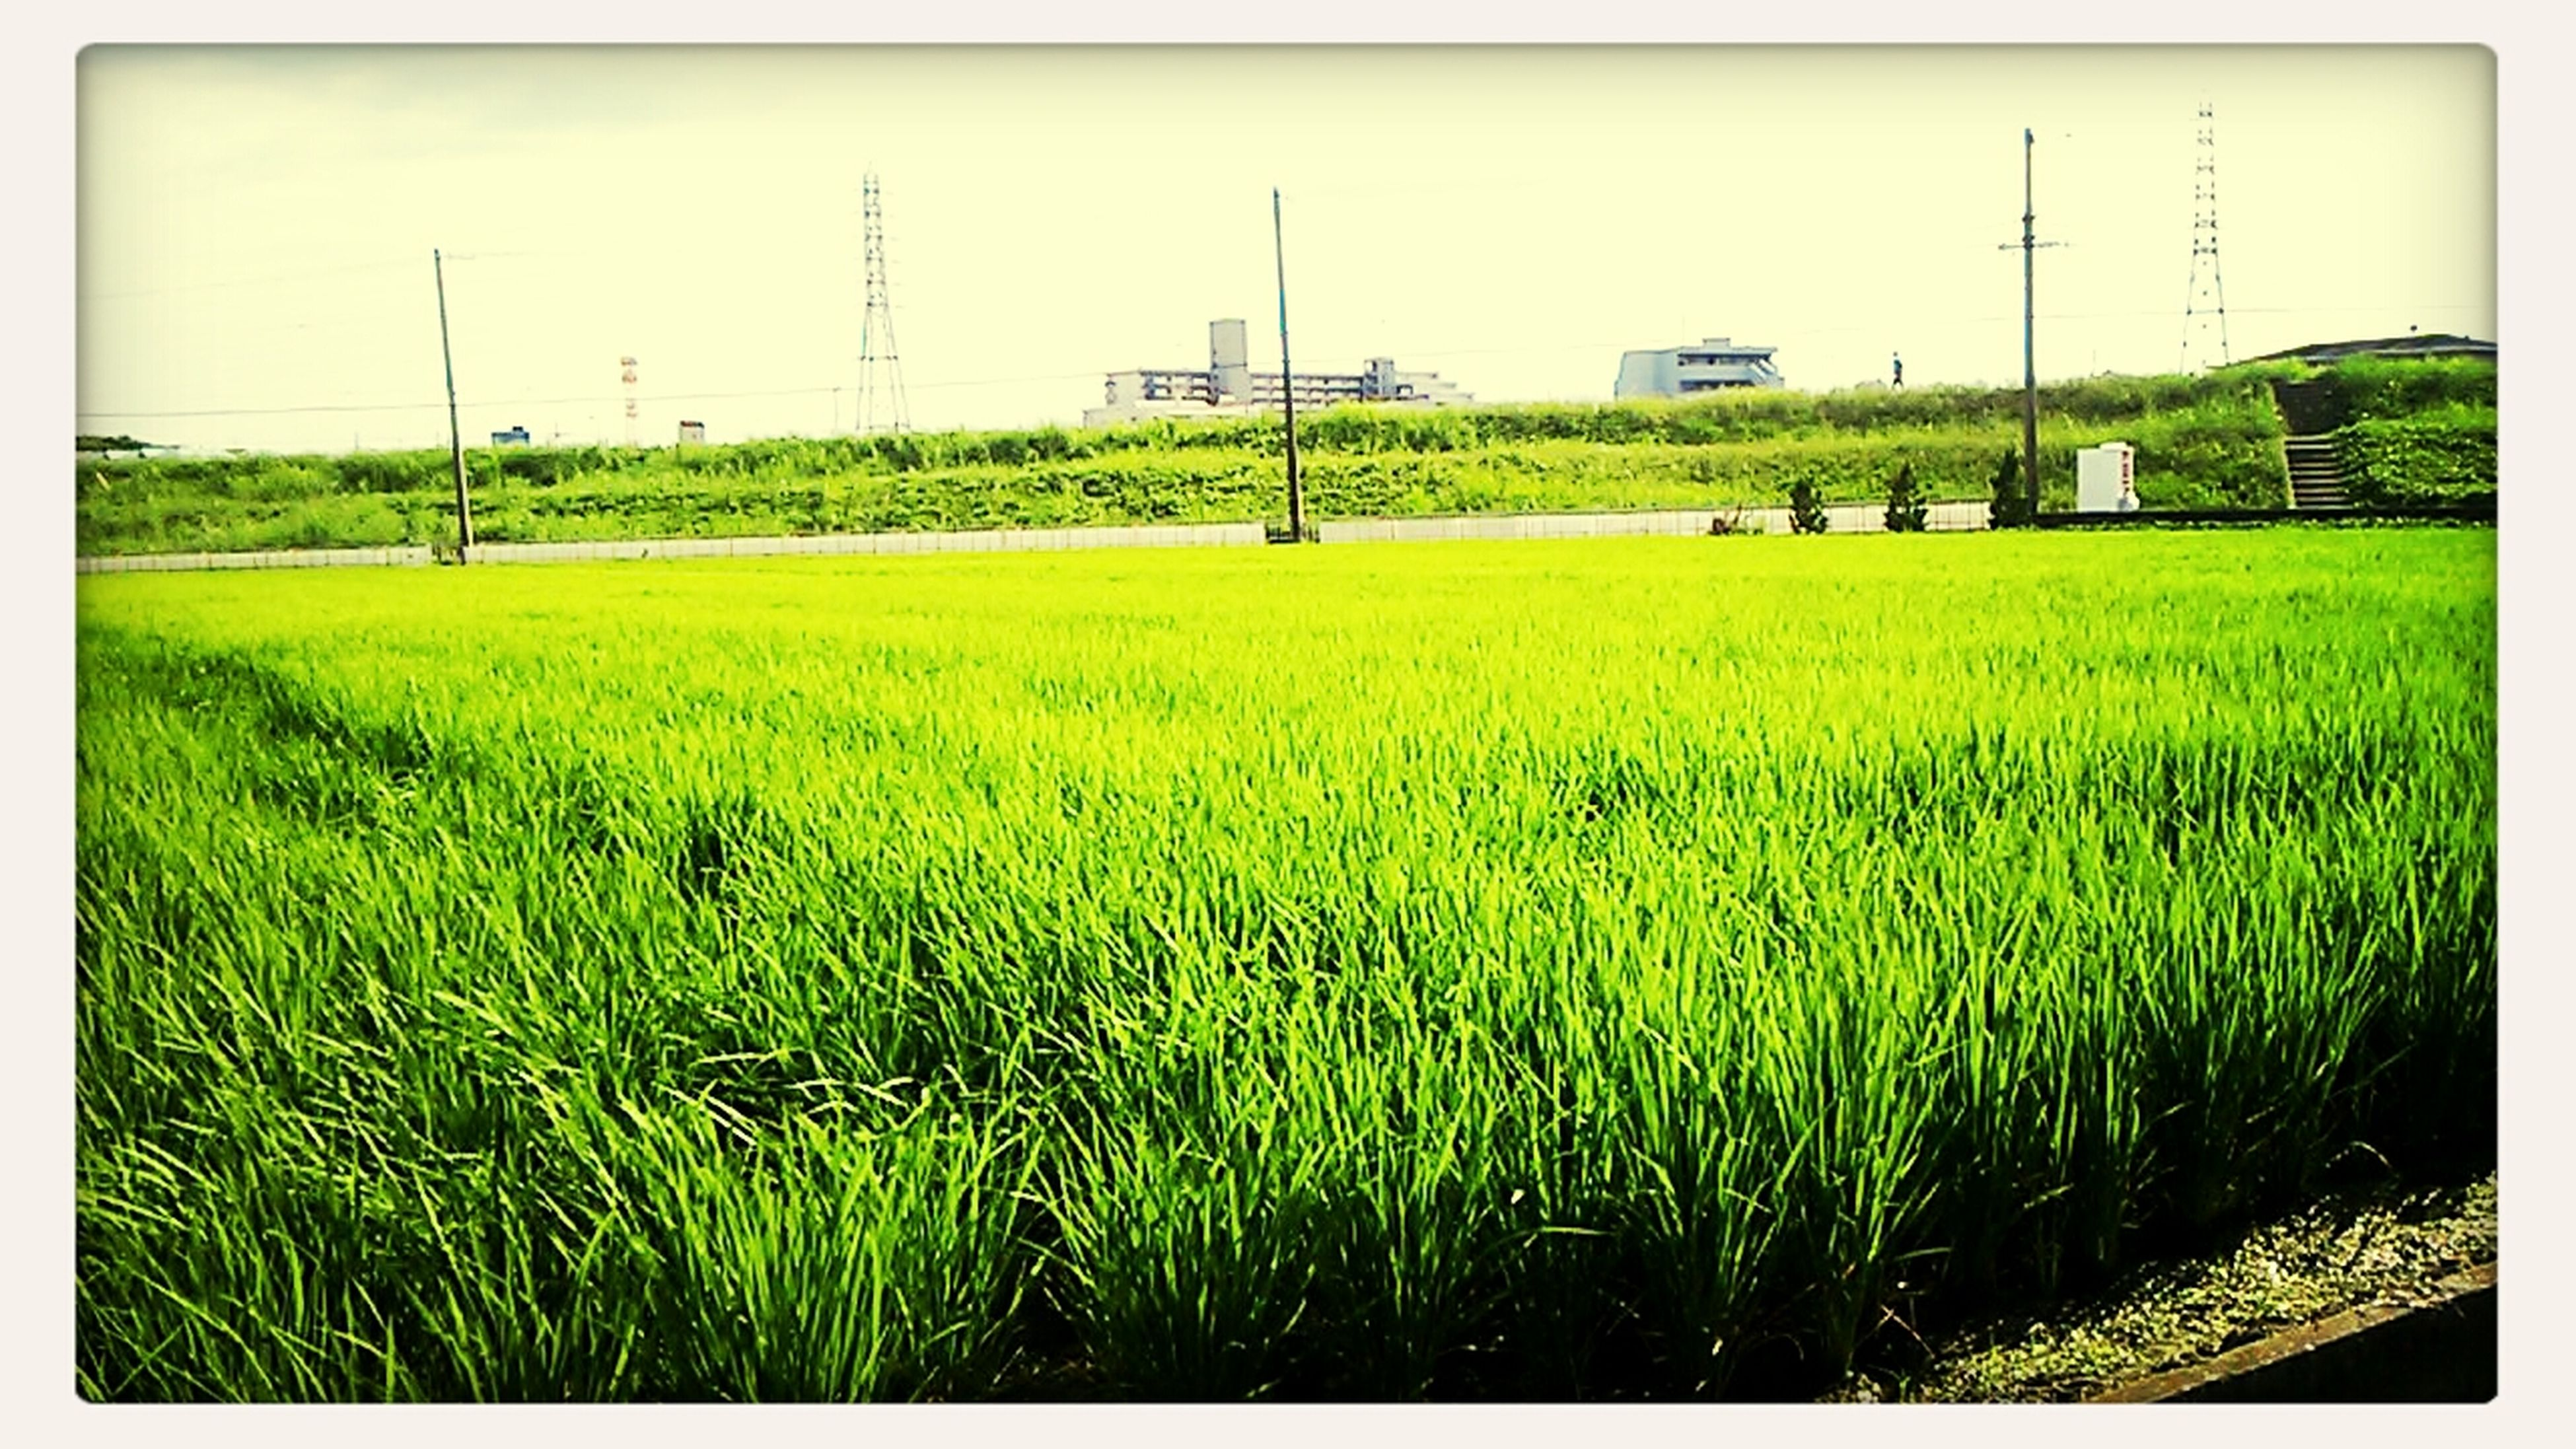 field, transfer print, agriculture, rural scene, farm, grass, landscape, crop, growth, auto post production filter, clear sky, green color, cultivated land, nature, fuel and power generation, tranquility, tranquil scene, grassy, sky, plant